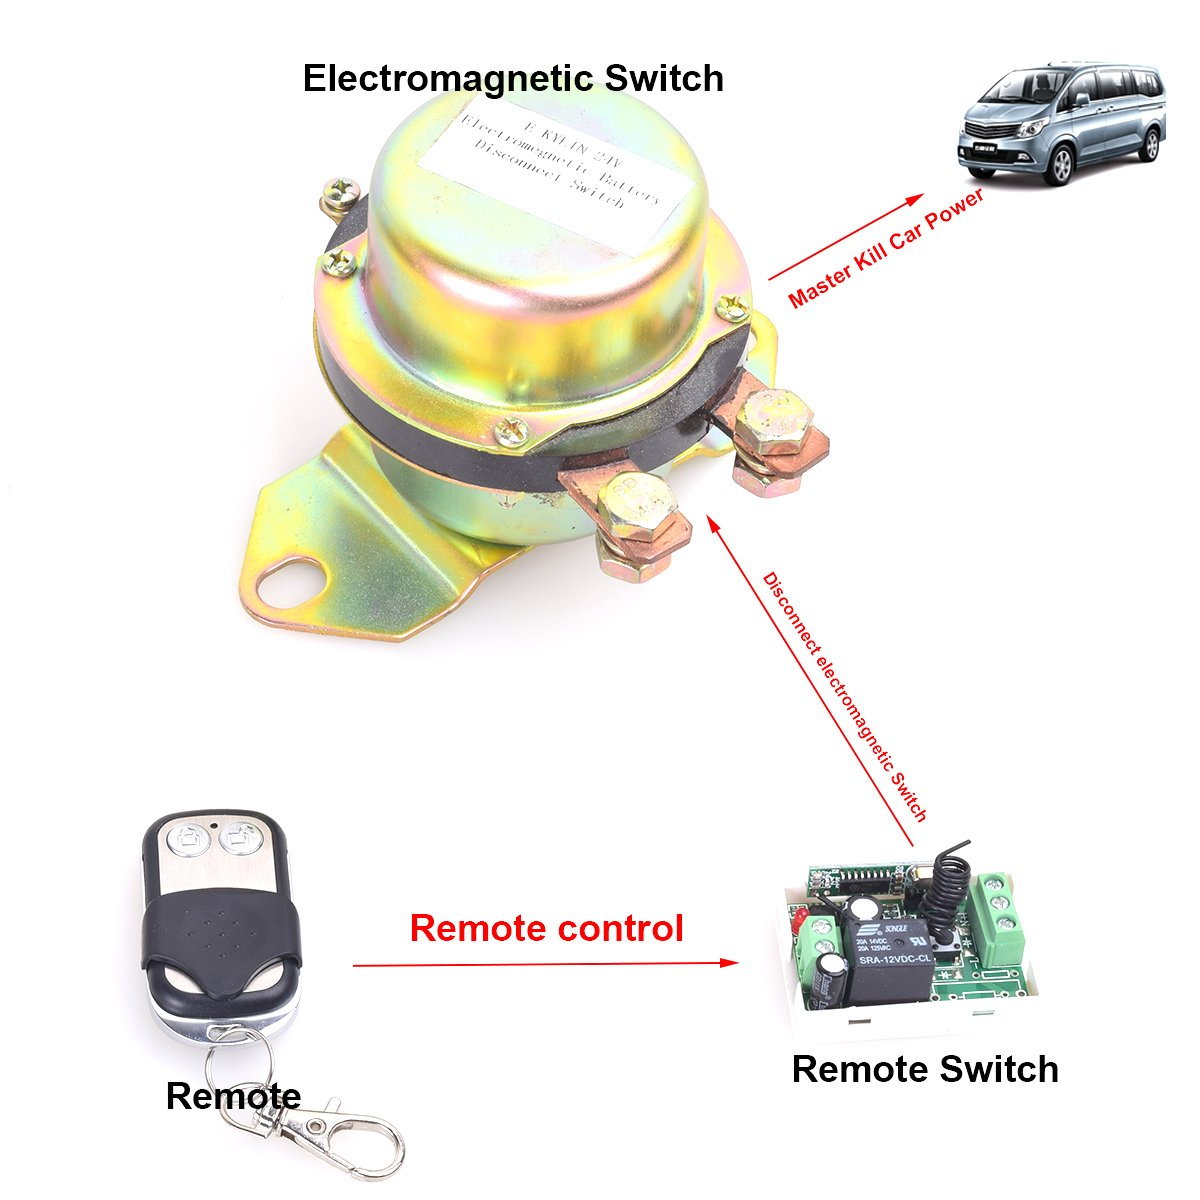 Car Wireless Remote Control Battery Switch Disconnect Latching Relay Power Anti Theft E Kylin Dc 12v Electromagnetic Solenoid Valve Terminal Master Kill System